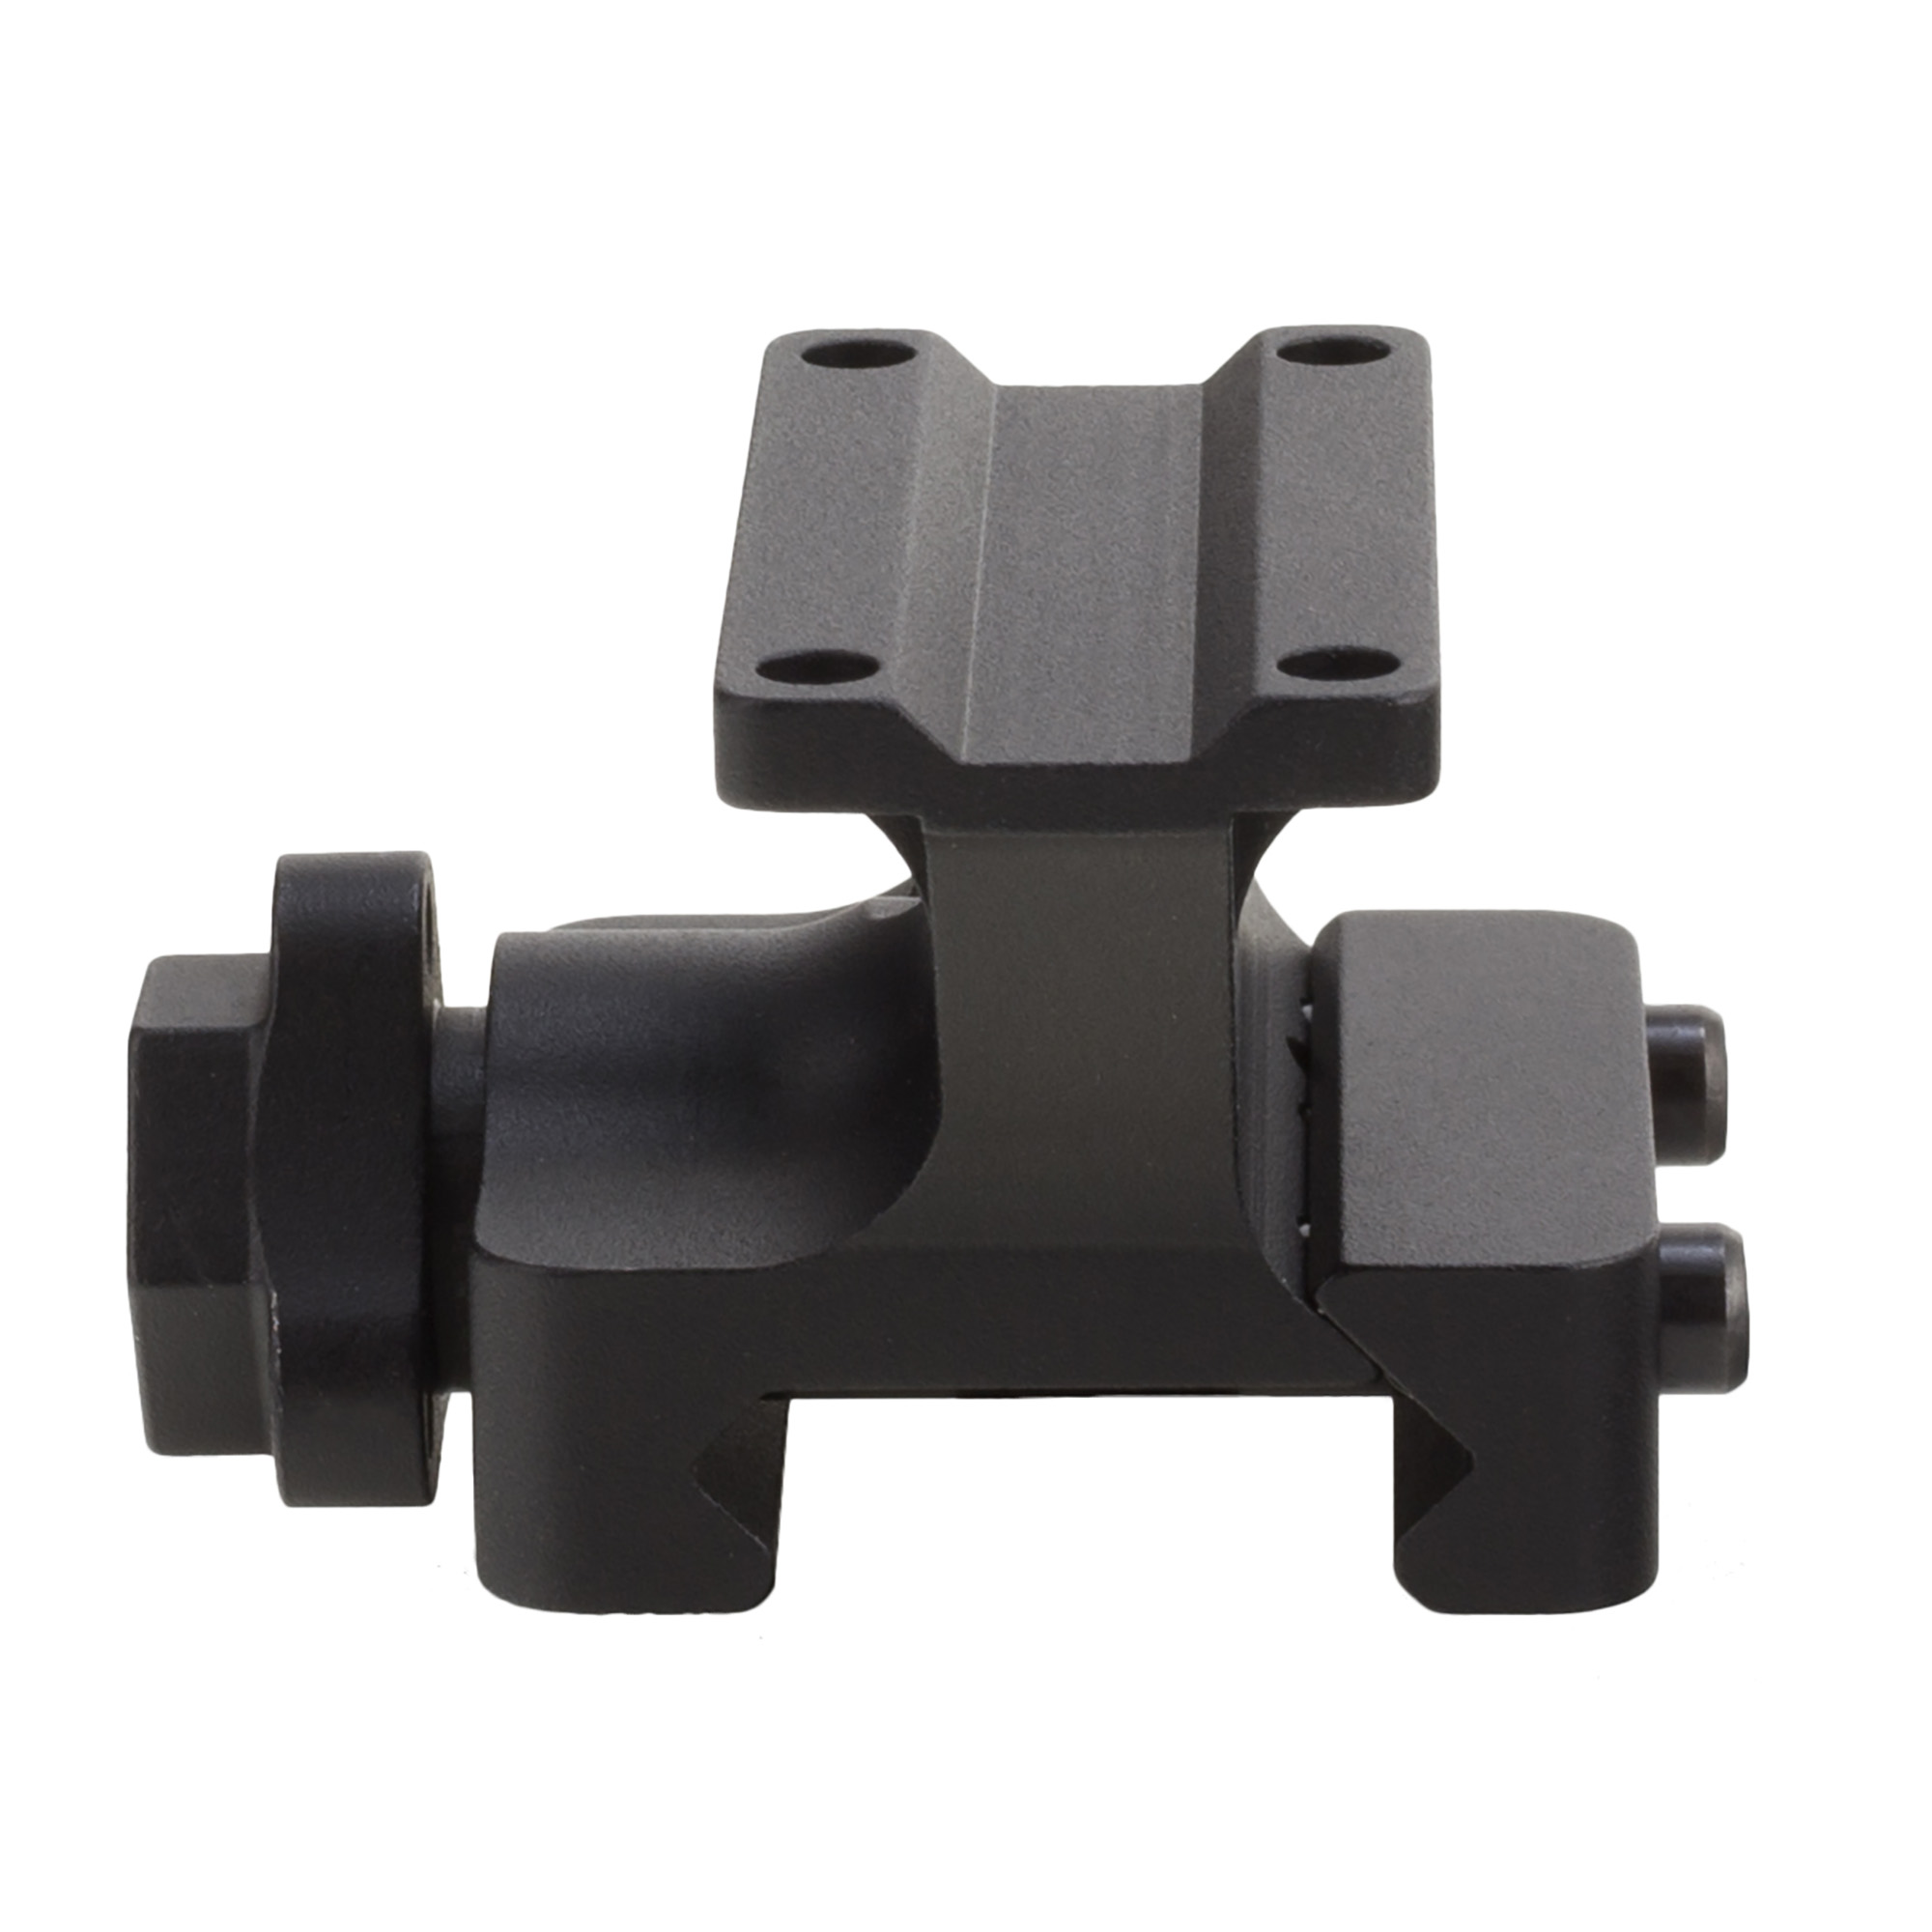 "The Trijicon MRO(R) Full Co-Witness Quick Release mount features a Mil-Spec drop test rated 7075-T6 aluminum design"" with an easy to use one handed tool less mounting. Return to Zero features in a low weight"" low profile design which works with any Picatinny rail. This means that the MRO is mounted at the same height as the iron sights. The optic's aiming dot will appear at the top of the iron sight post. This mount is typically used with flip up iron sights."